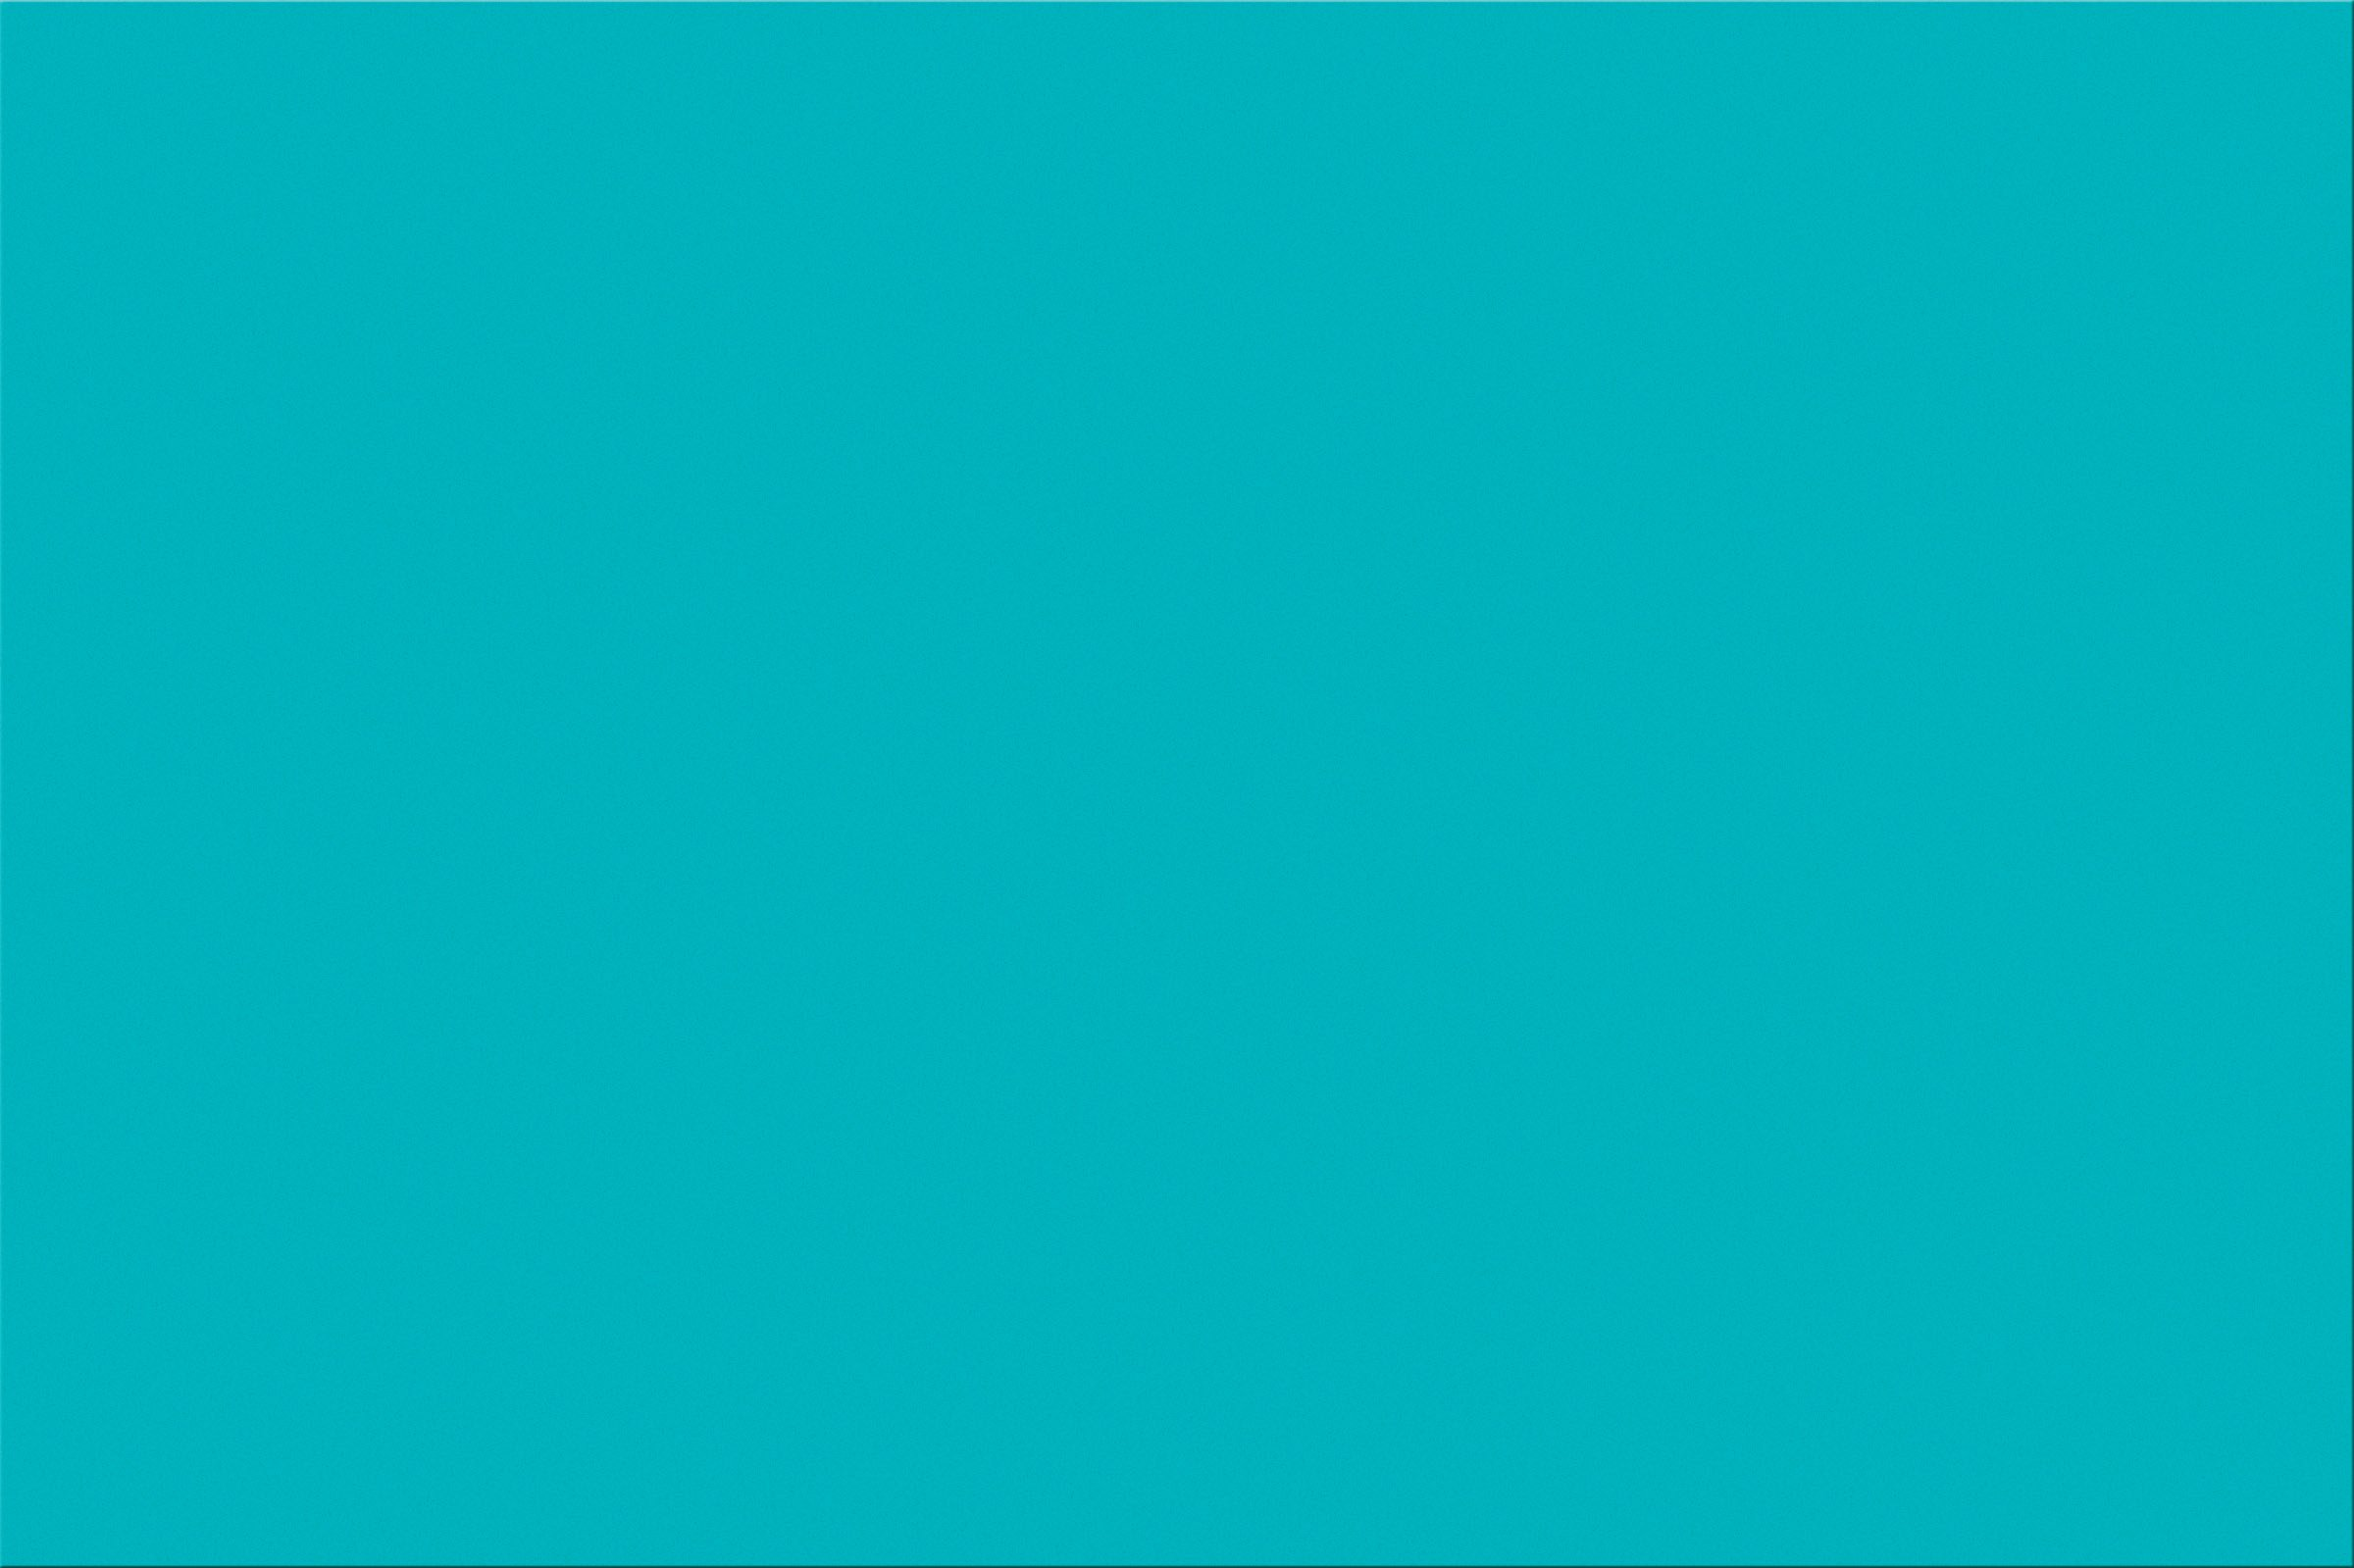 Pacon SunWorks Construction Paper, 12'' x 18'', 100-Count, Turquoise (7708)